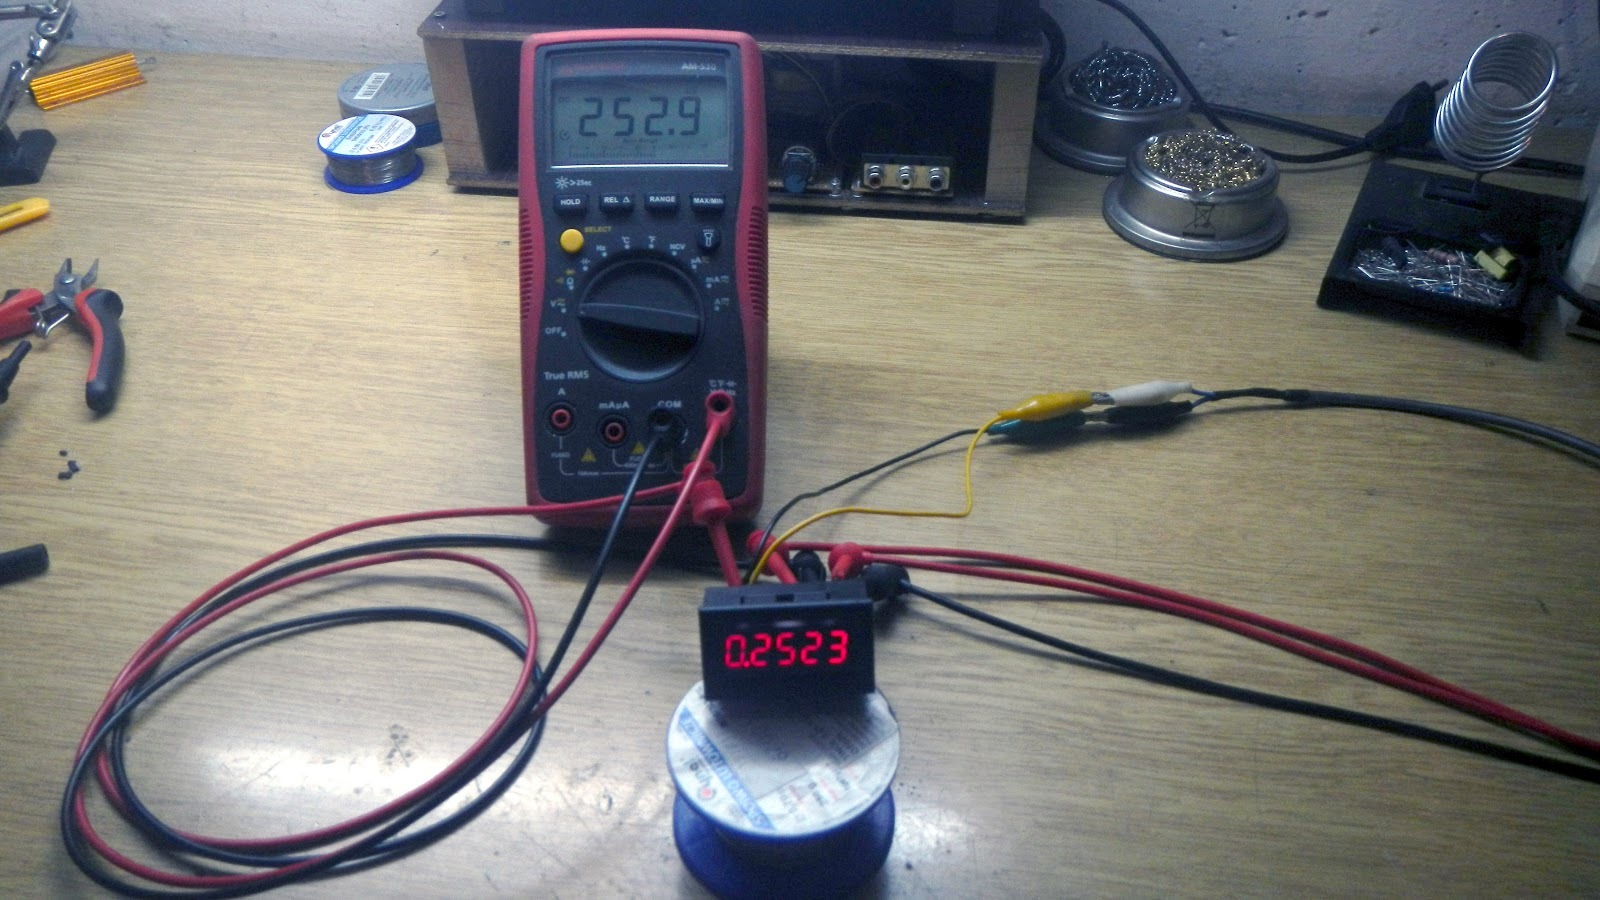 Elvis DIY Electronics Projects: Peak voltage detector for a